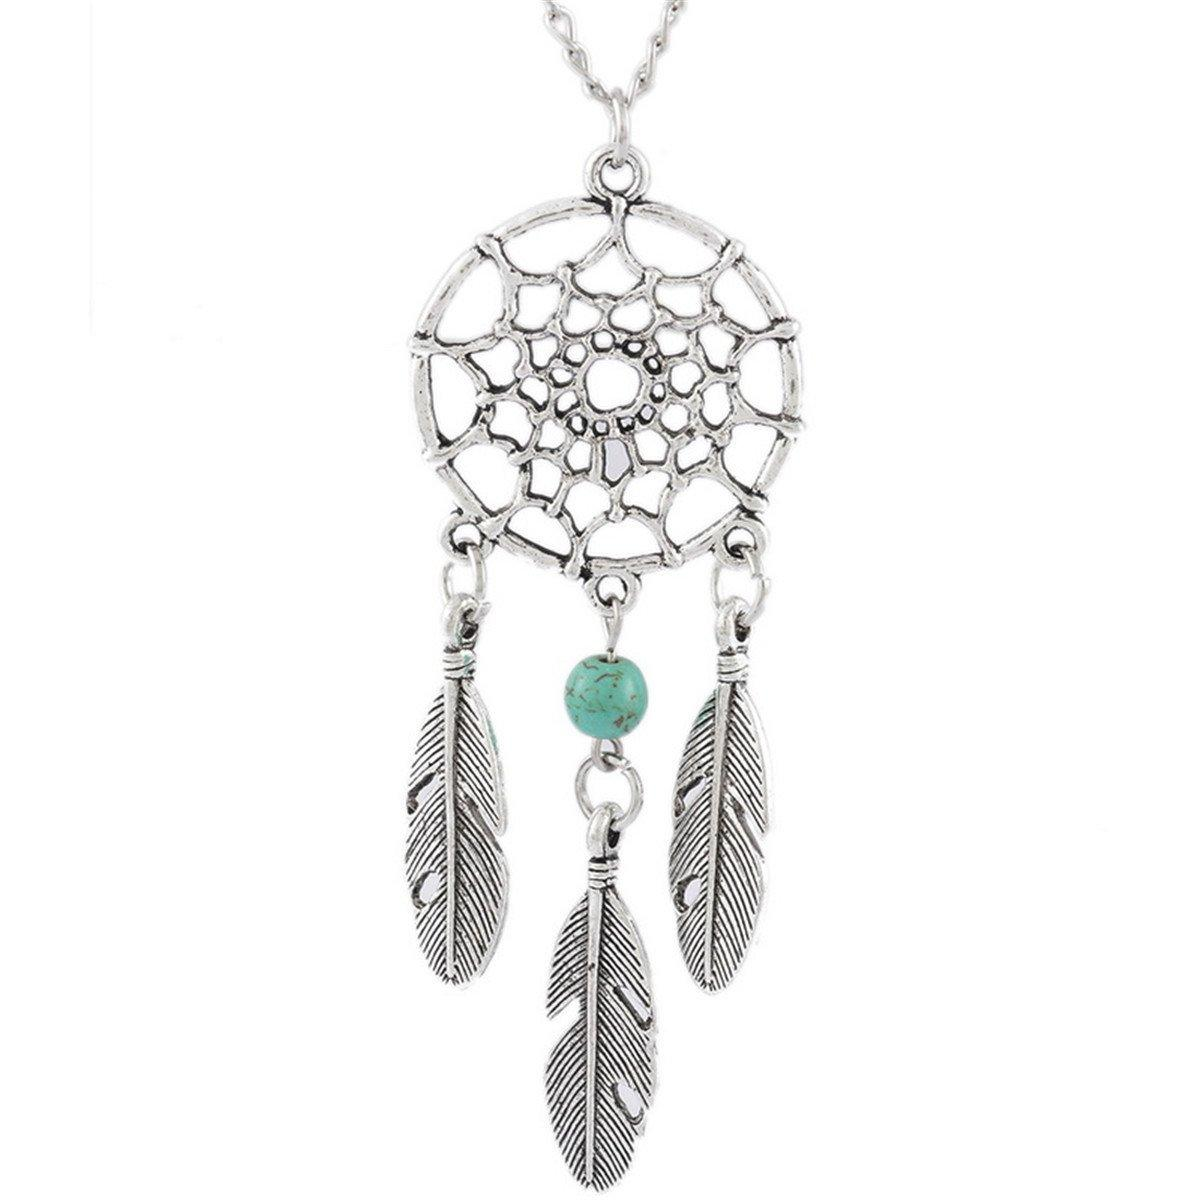 Lily Fashion Dream Catcher Pendant Chain Necklace With